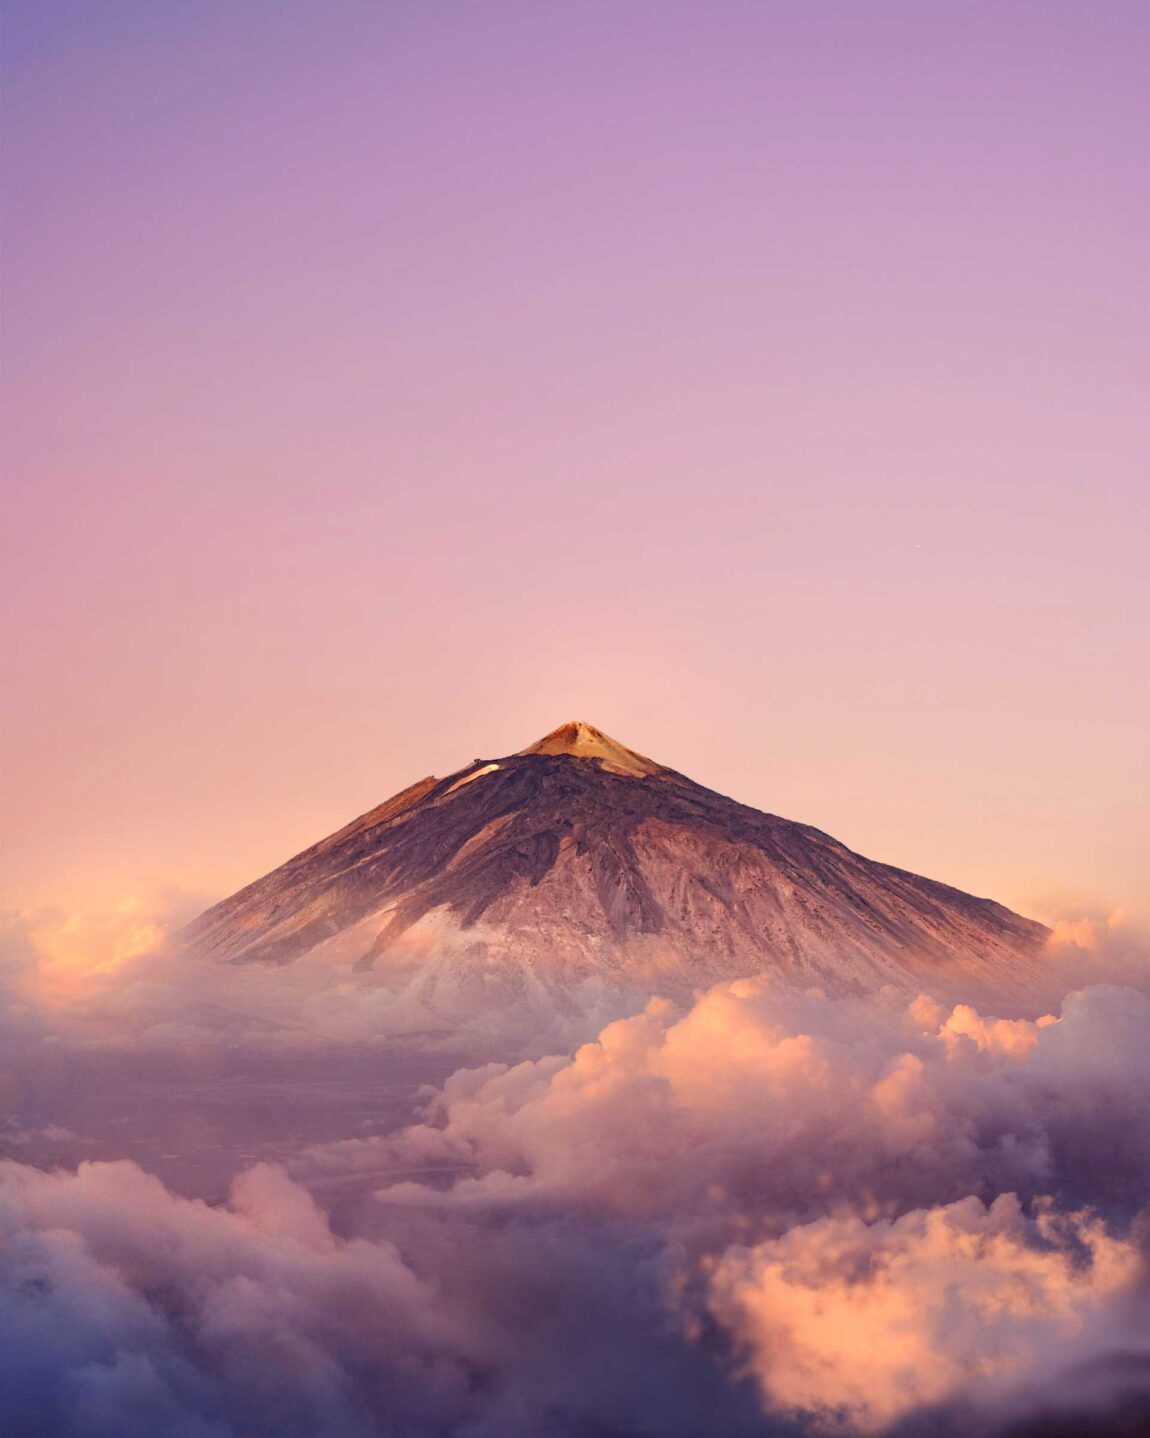 Tenerife is one of the best destinations to visit in Europe as a digital nomad